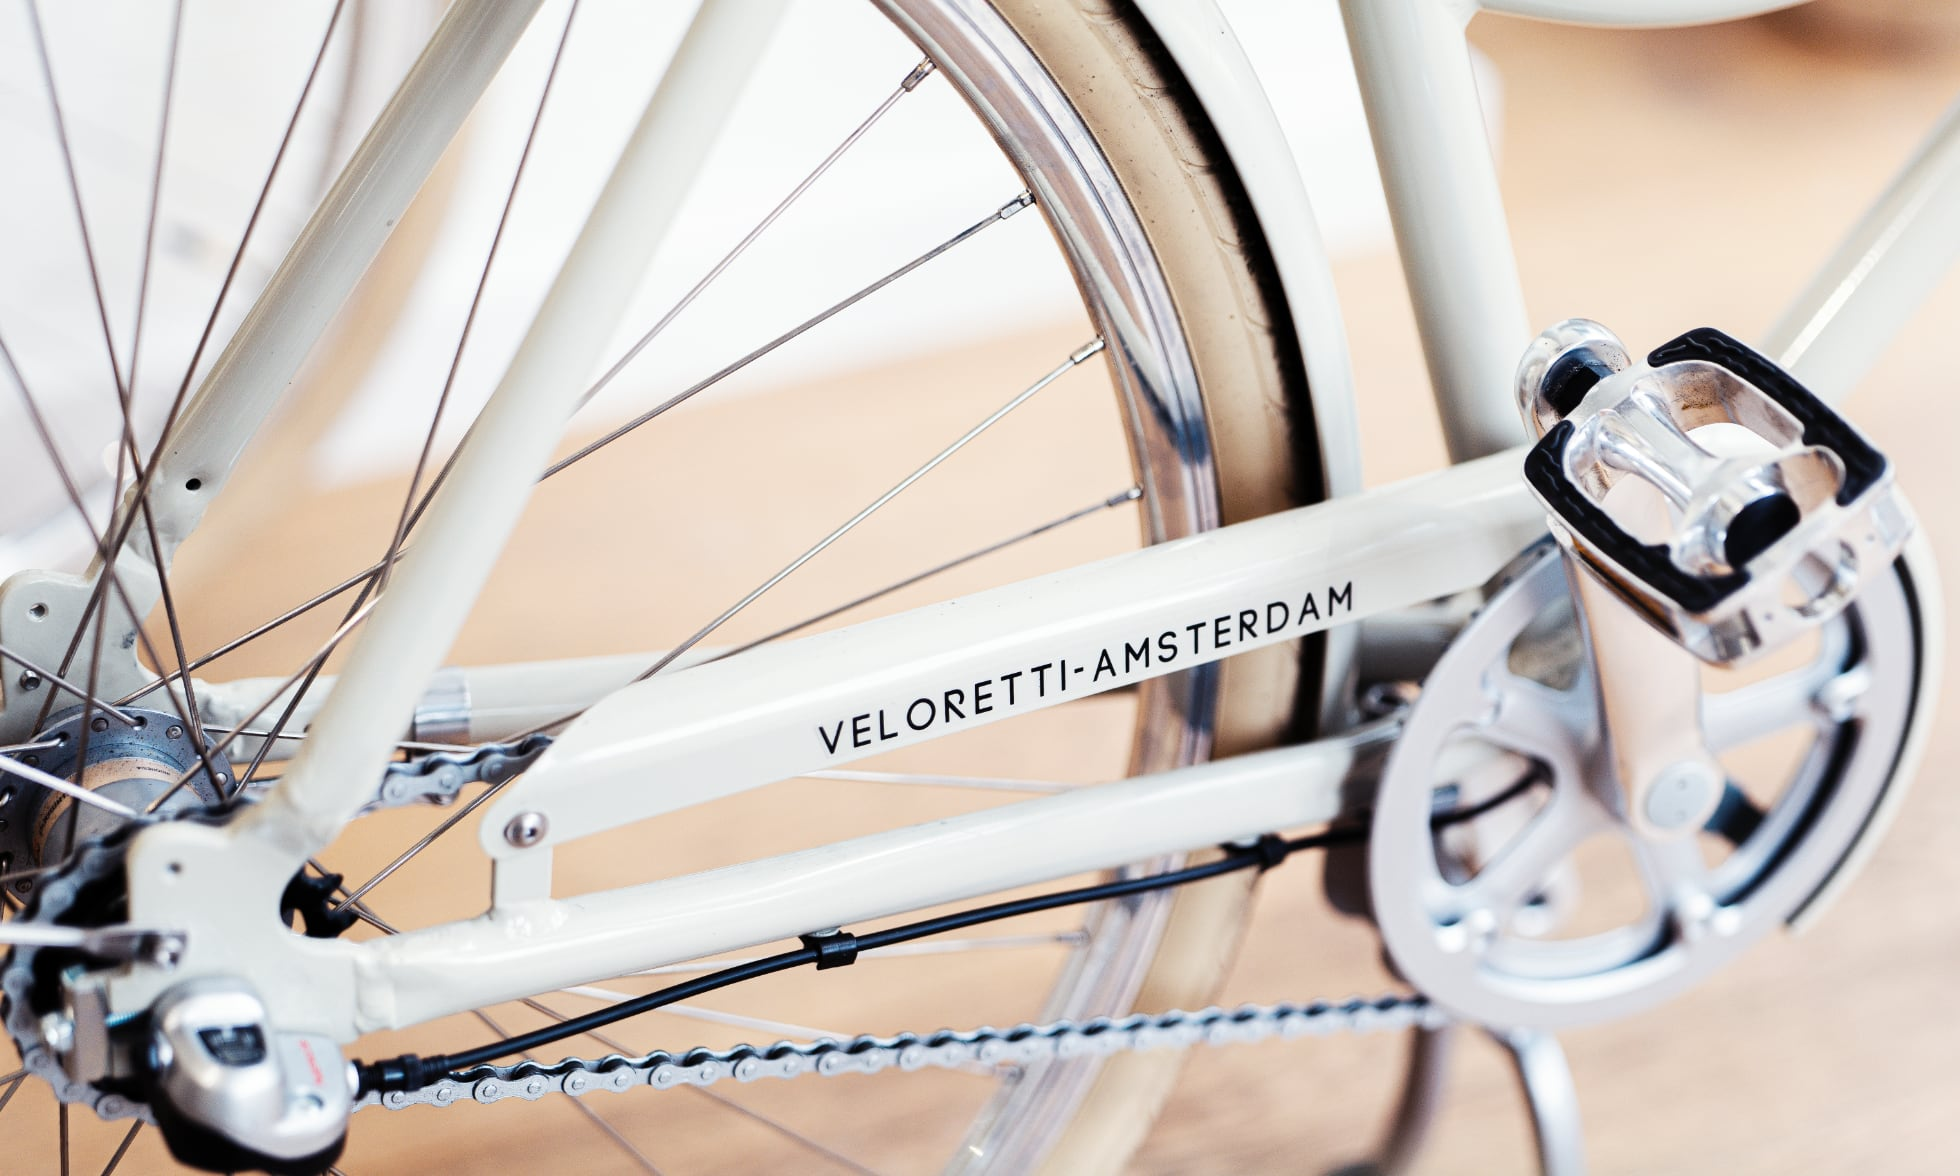 A close up on a Veloretti Bicycle